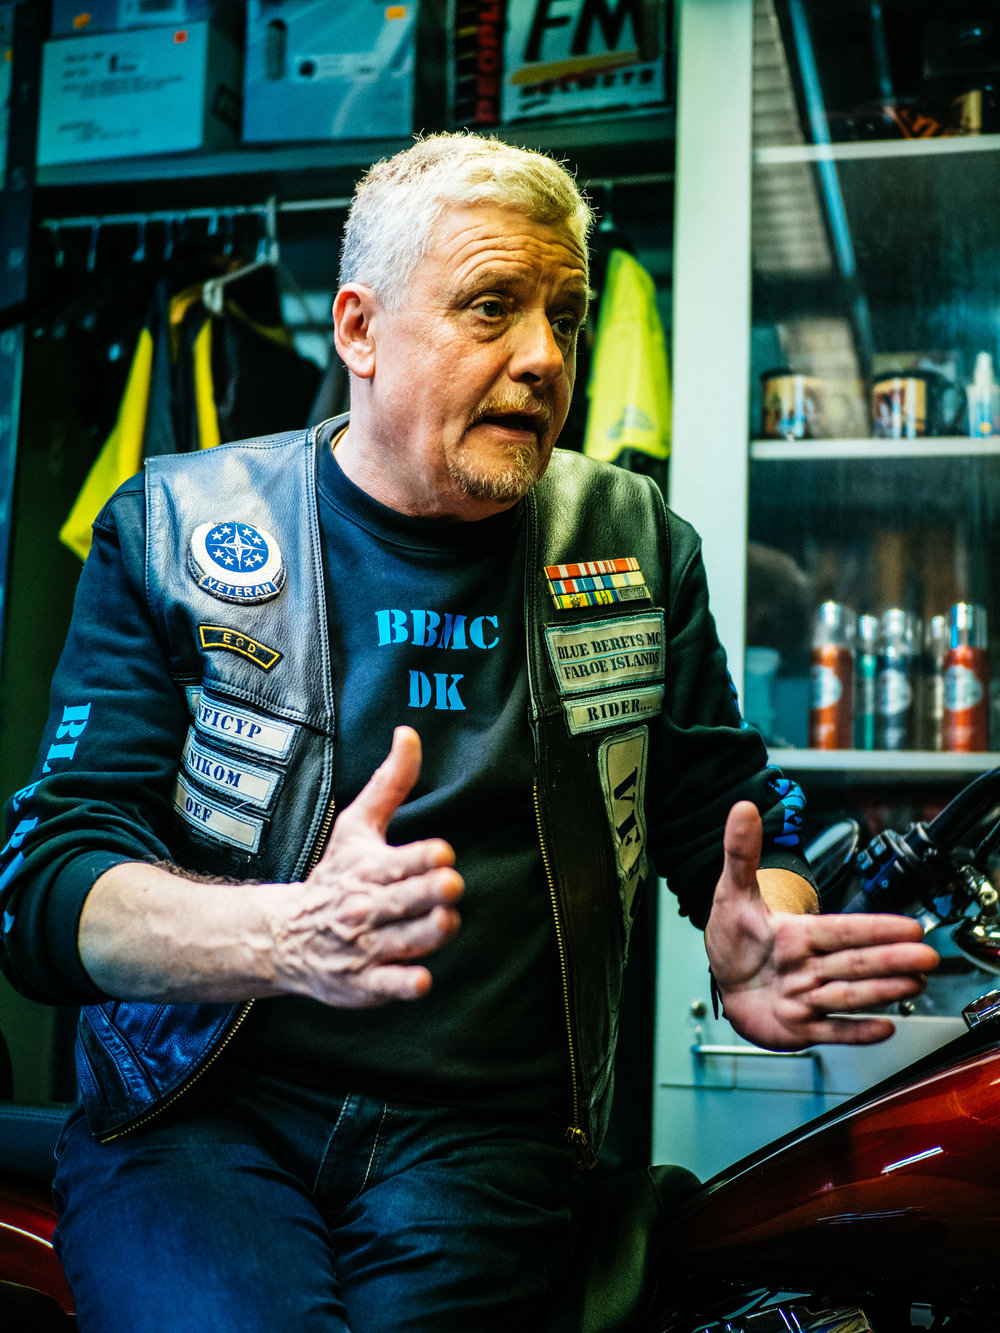 Ove, owner of the smallest Harley Davidson dealership in the world, Chief Master Sergeant in the Danish Airforce, Bombsquad.